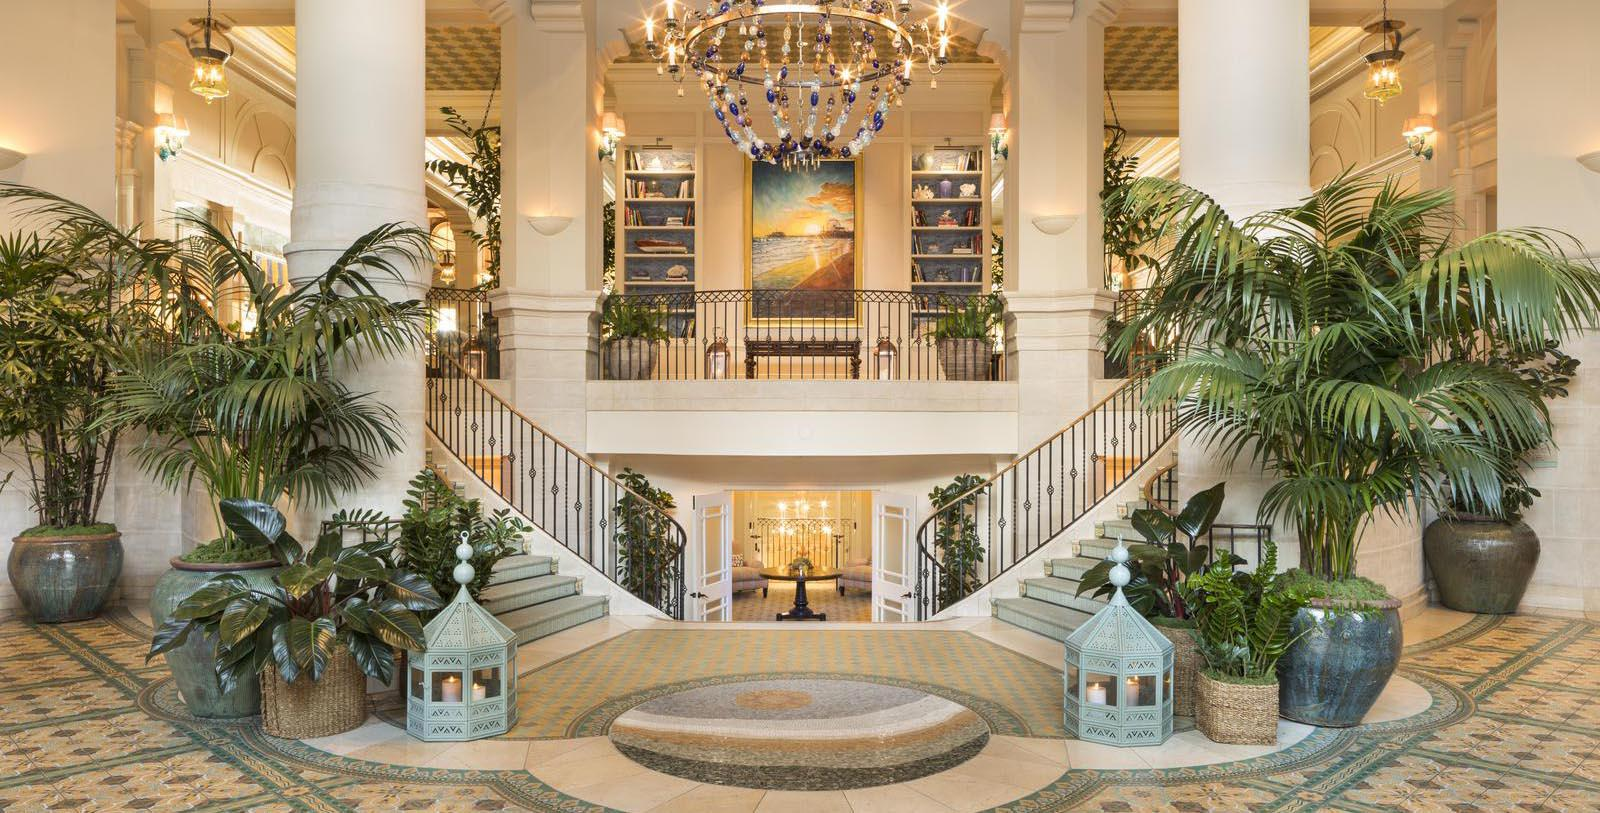 Image of Lobby Staircase, Hotel Casa del Mar in Santa Monica, California, 1926, Member of Historic Hotels of America, Special Offers, Discounted Rates, Families, Romantic Escape, Honeymoons, Anniversaries, Reunions